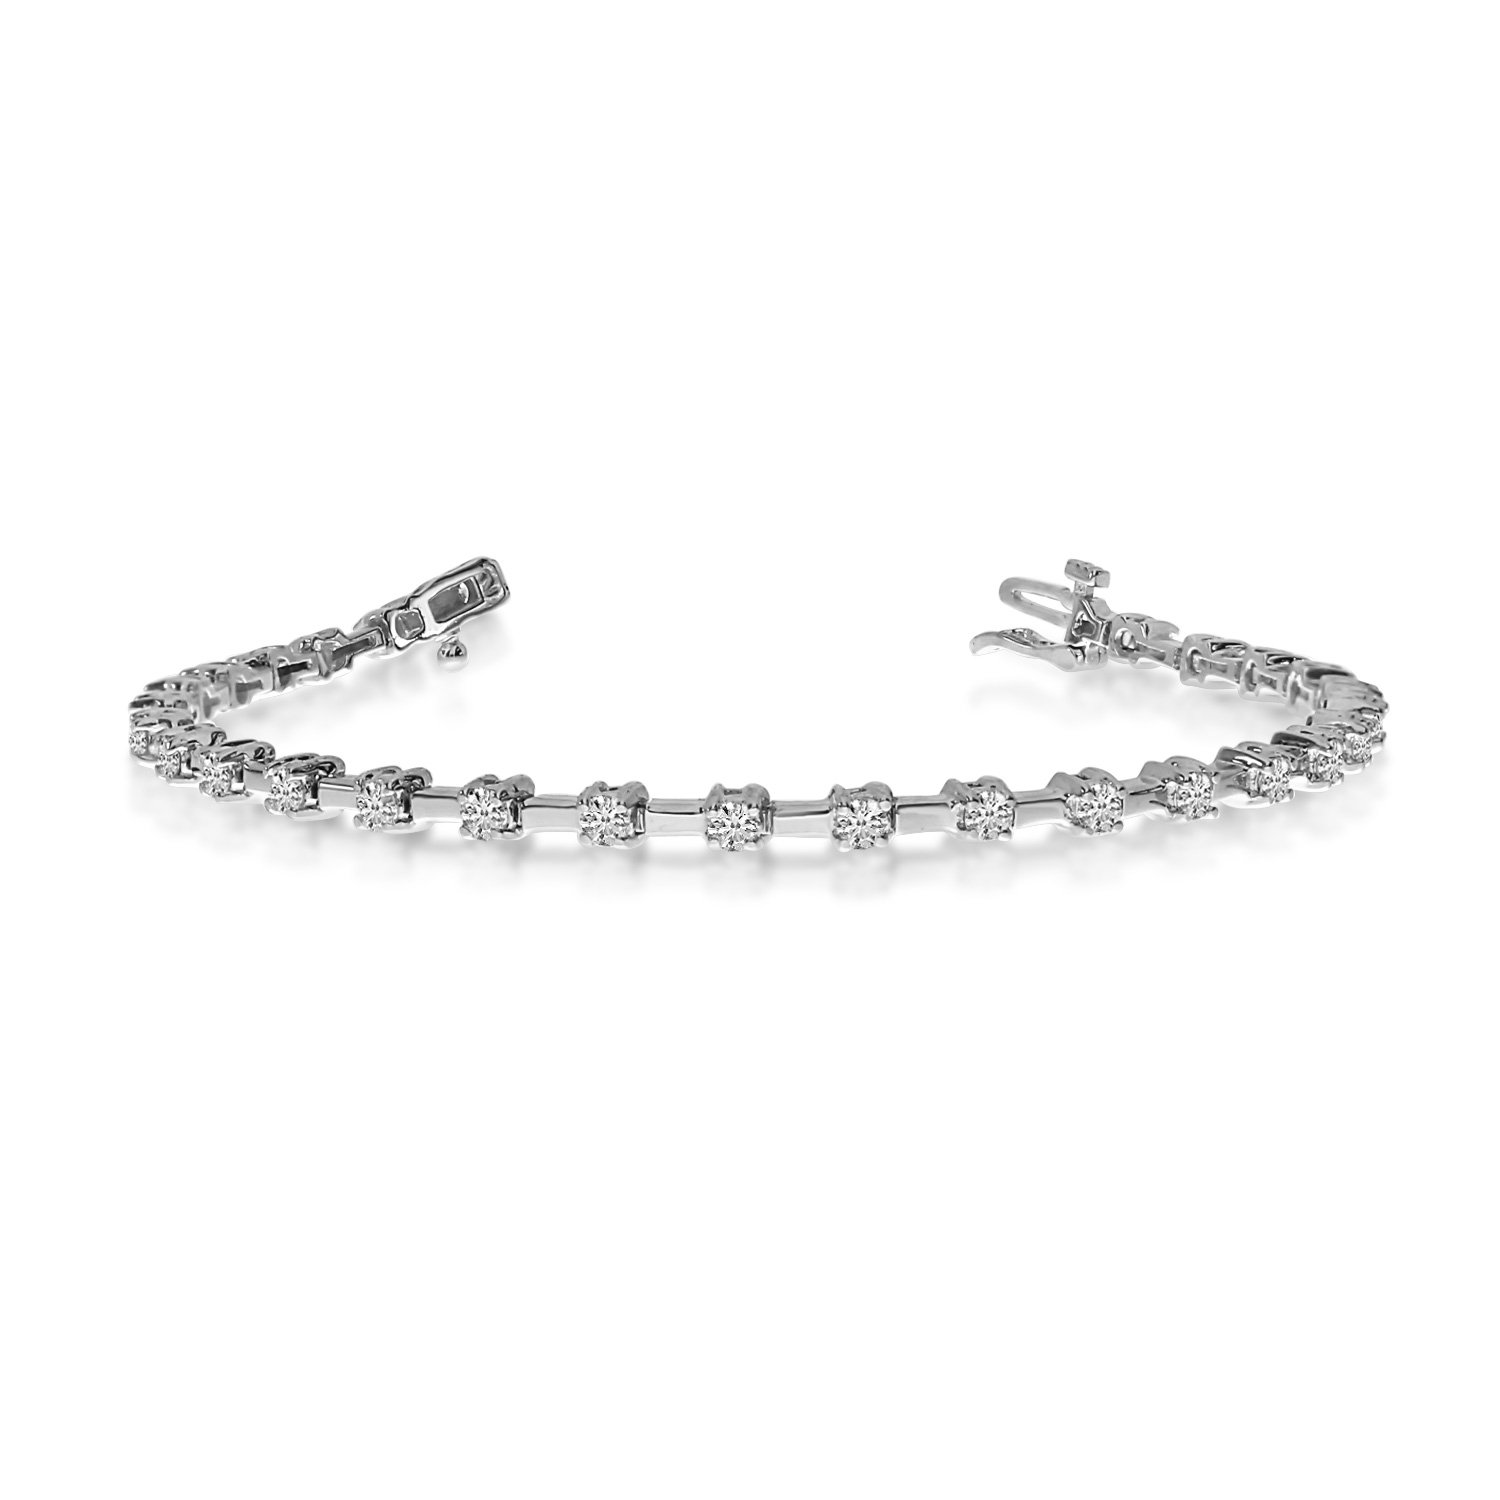 14K White Gold Round Diamond Bar Style Tennis Bracelet (7 Inch Length) by Direct-Jewelry